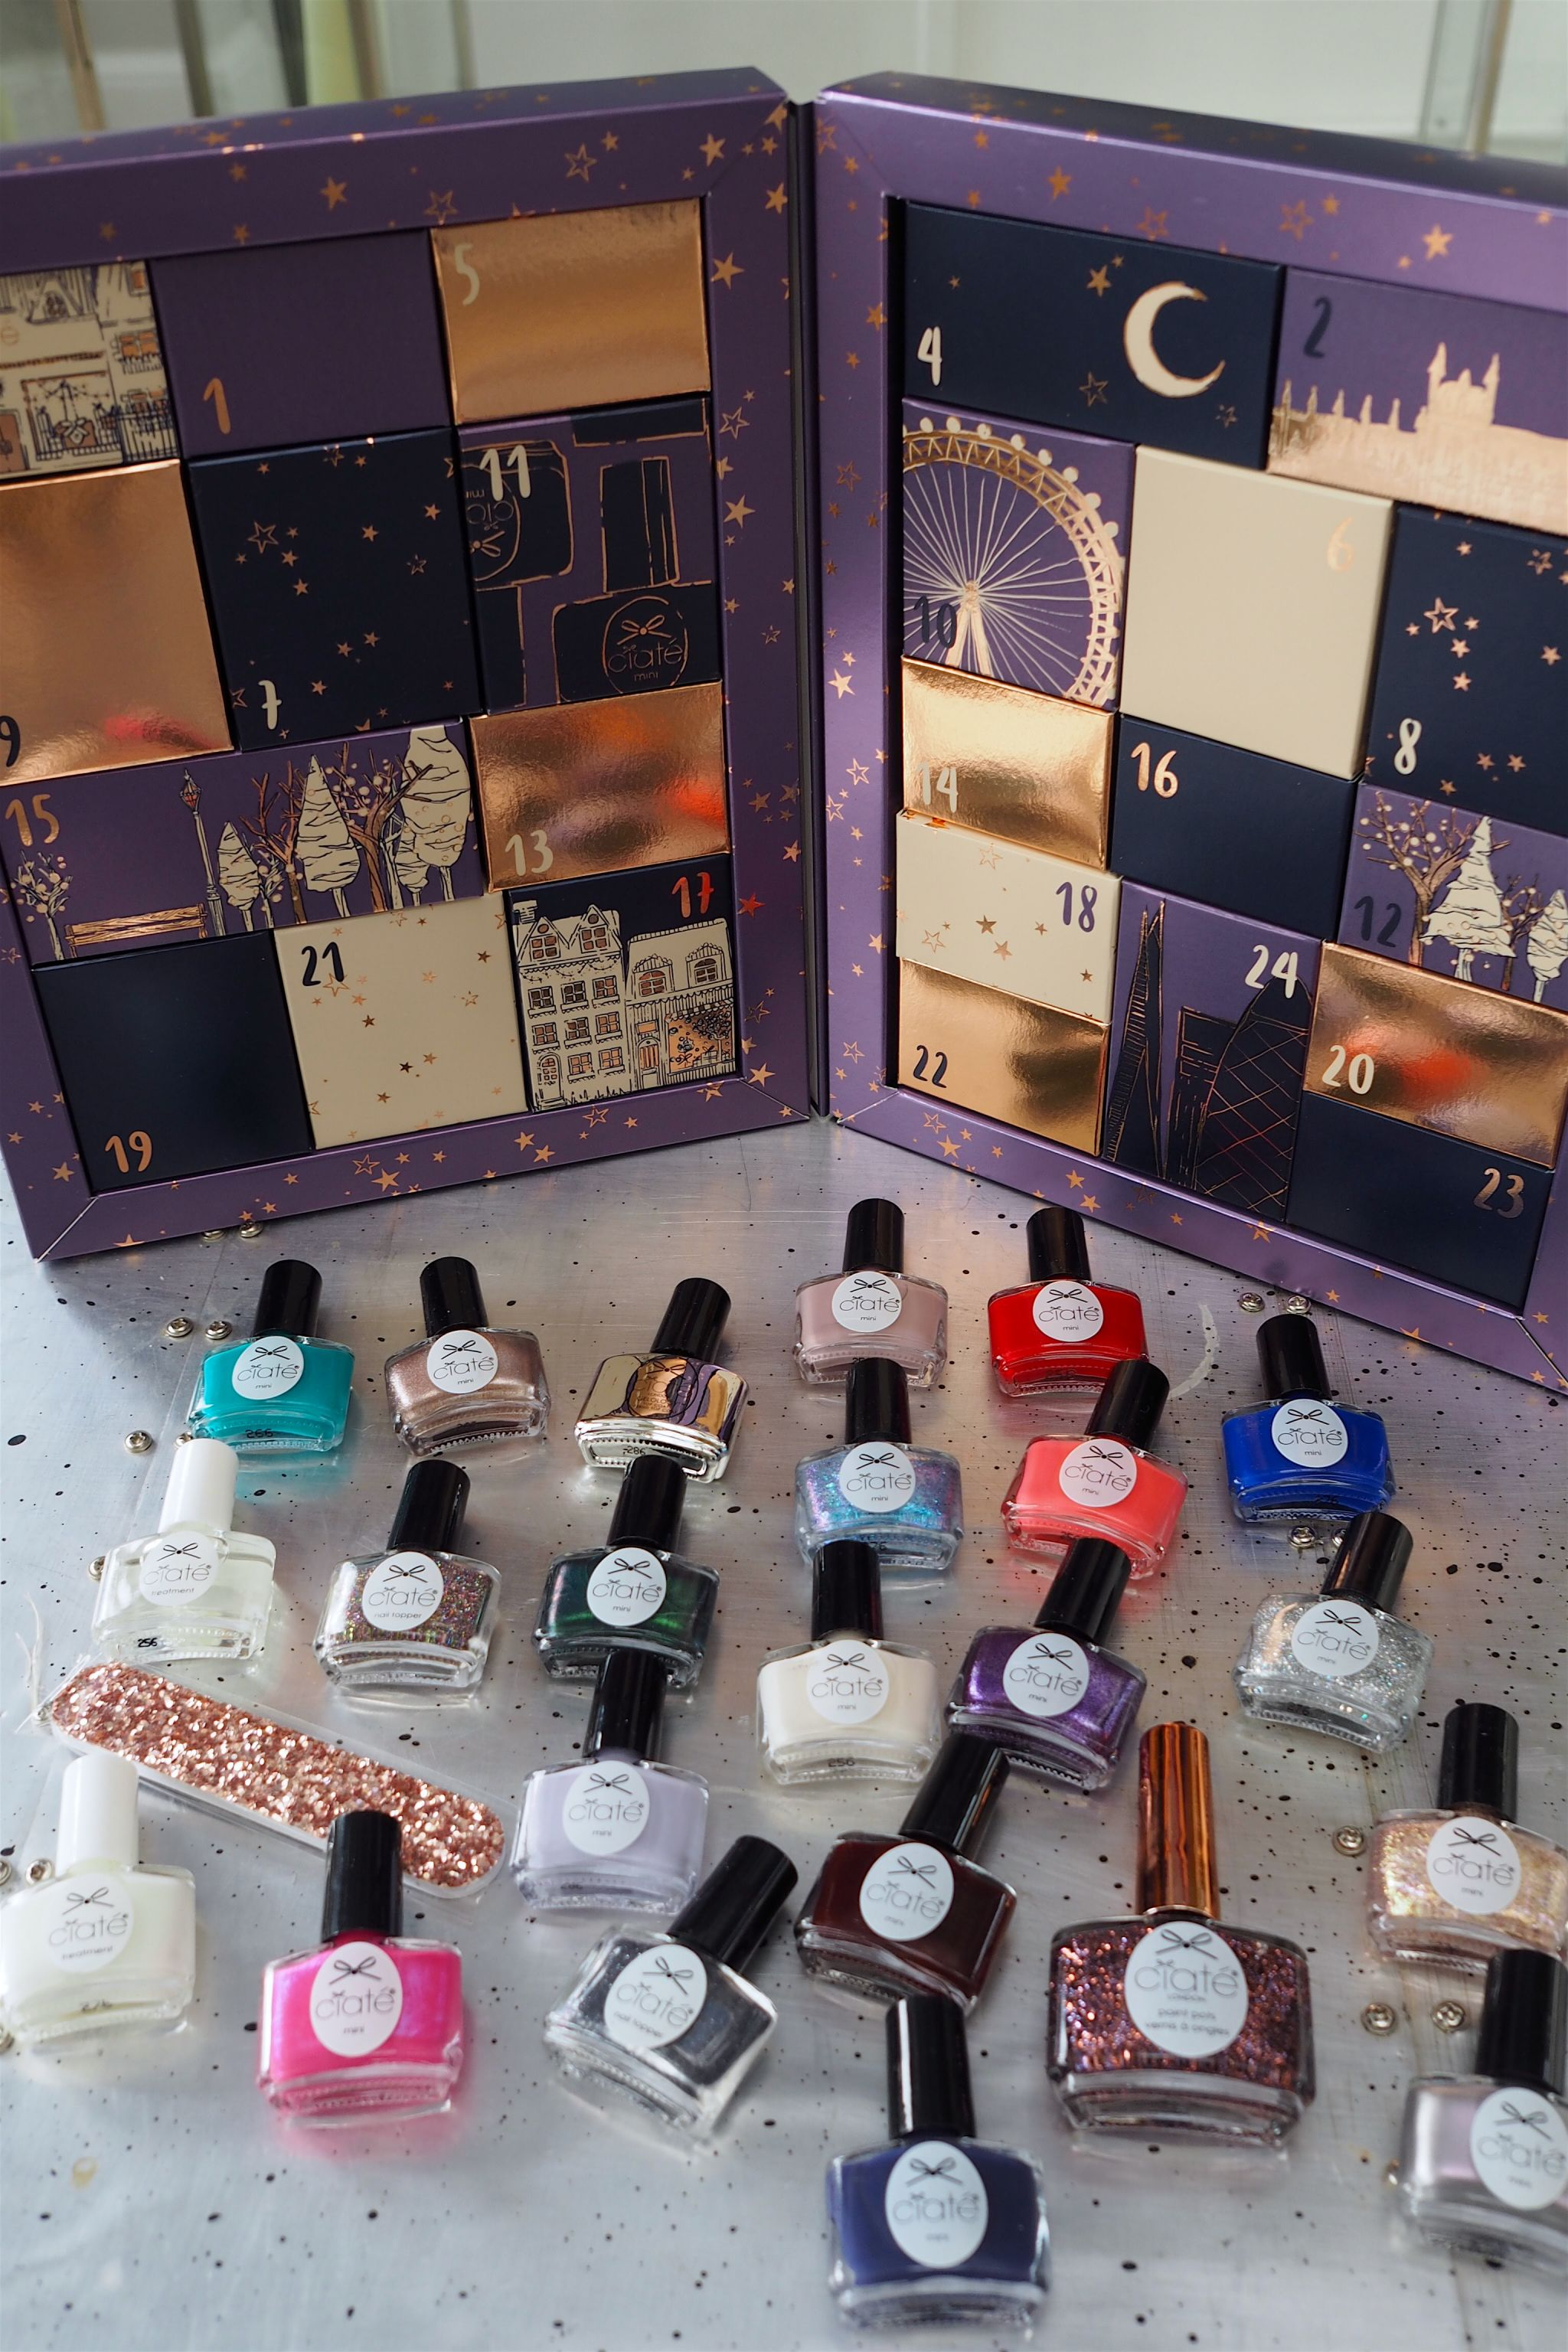 The Best Beauty Advent Calendars 2016 - Fleur De Force